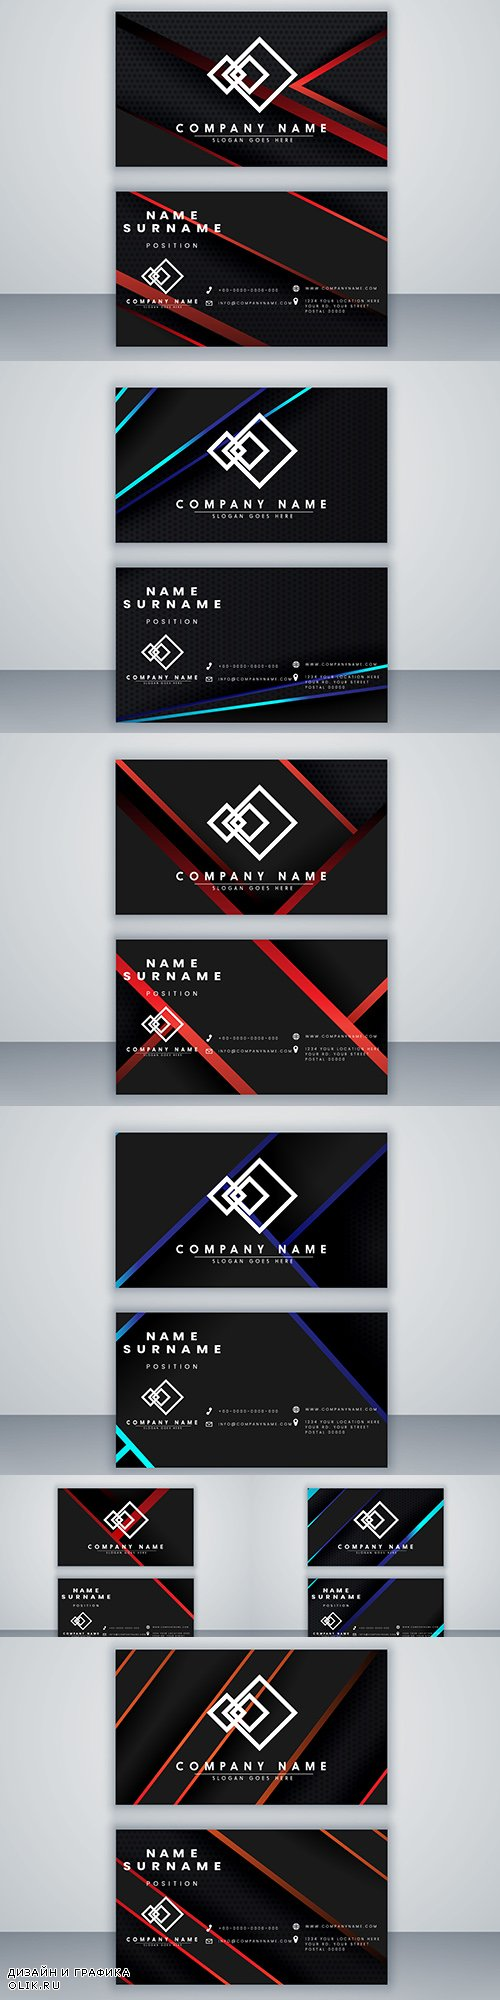 Modern design business card template in dark style